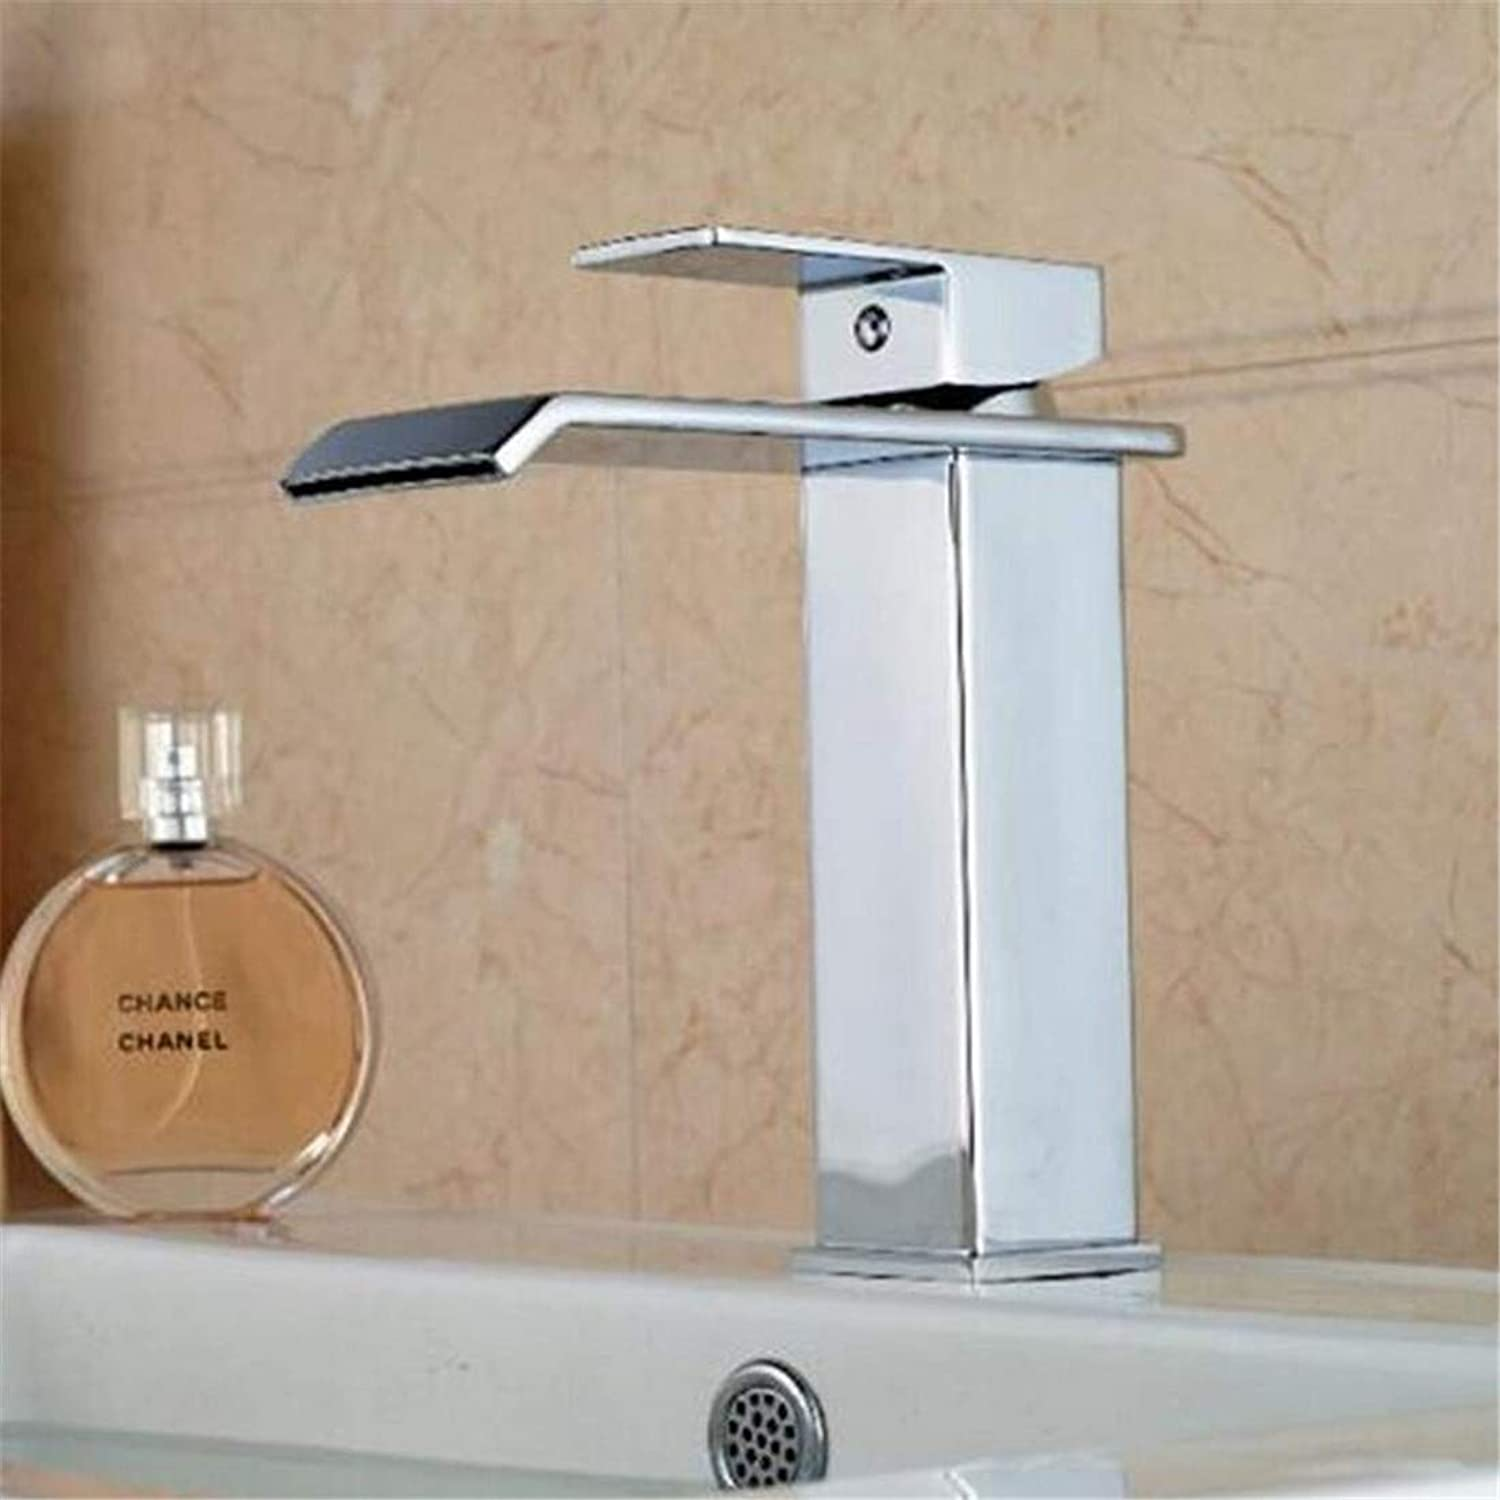 Kitchen Hot and Cold Water Brass Chrome Basin Mixer Bathroom Faucet Basin Sink Faucet Single Handle One Hole with Hot and Cold Water Bathroom